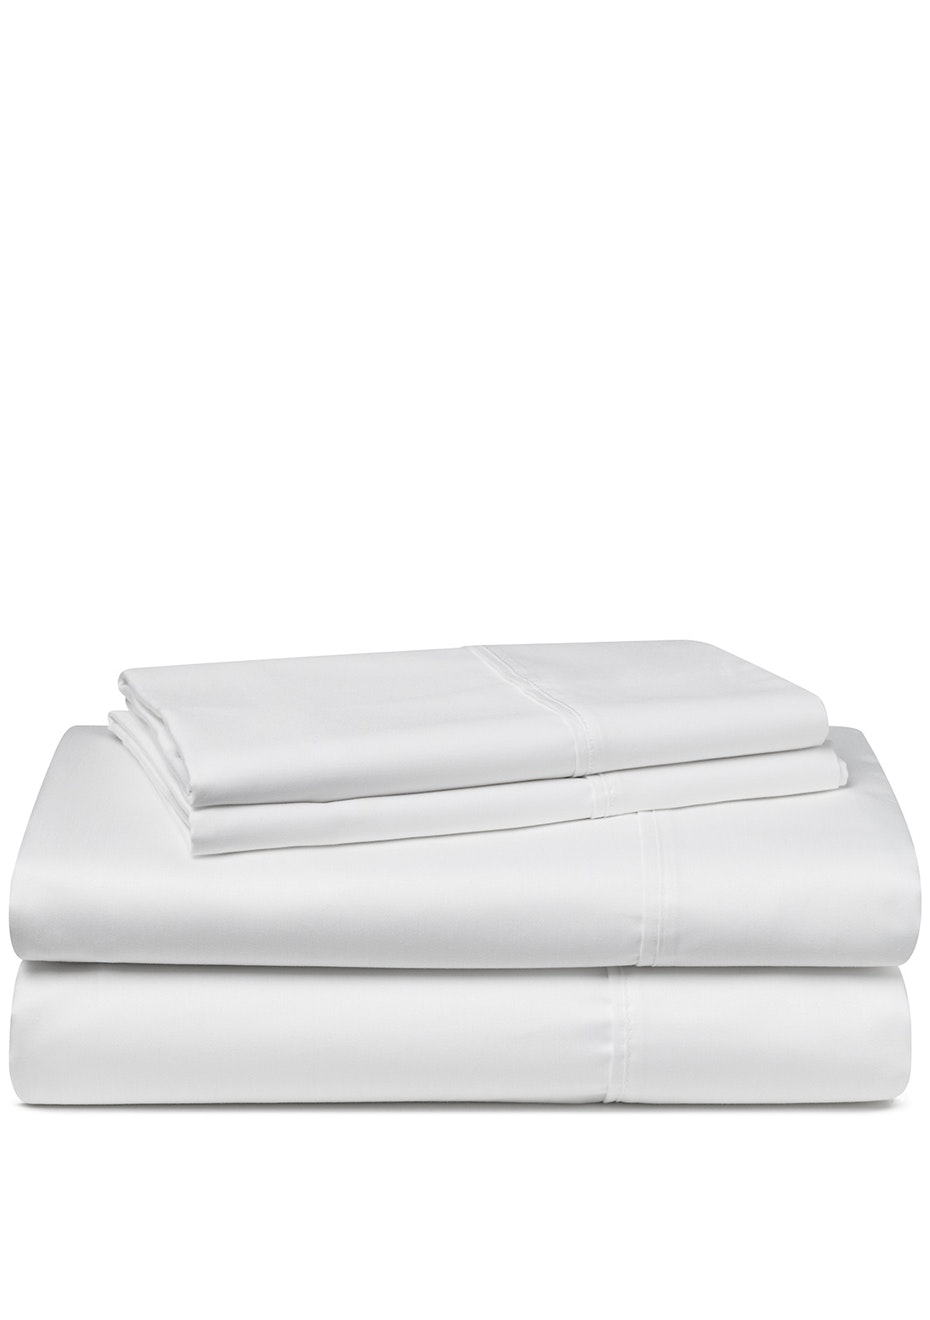 Palazzo Royale 1000 Thread Count Premium Blend Sheet Set Queen Bed Crisp White